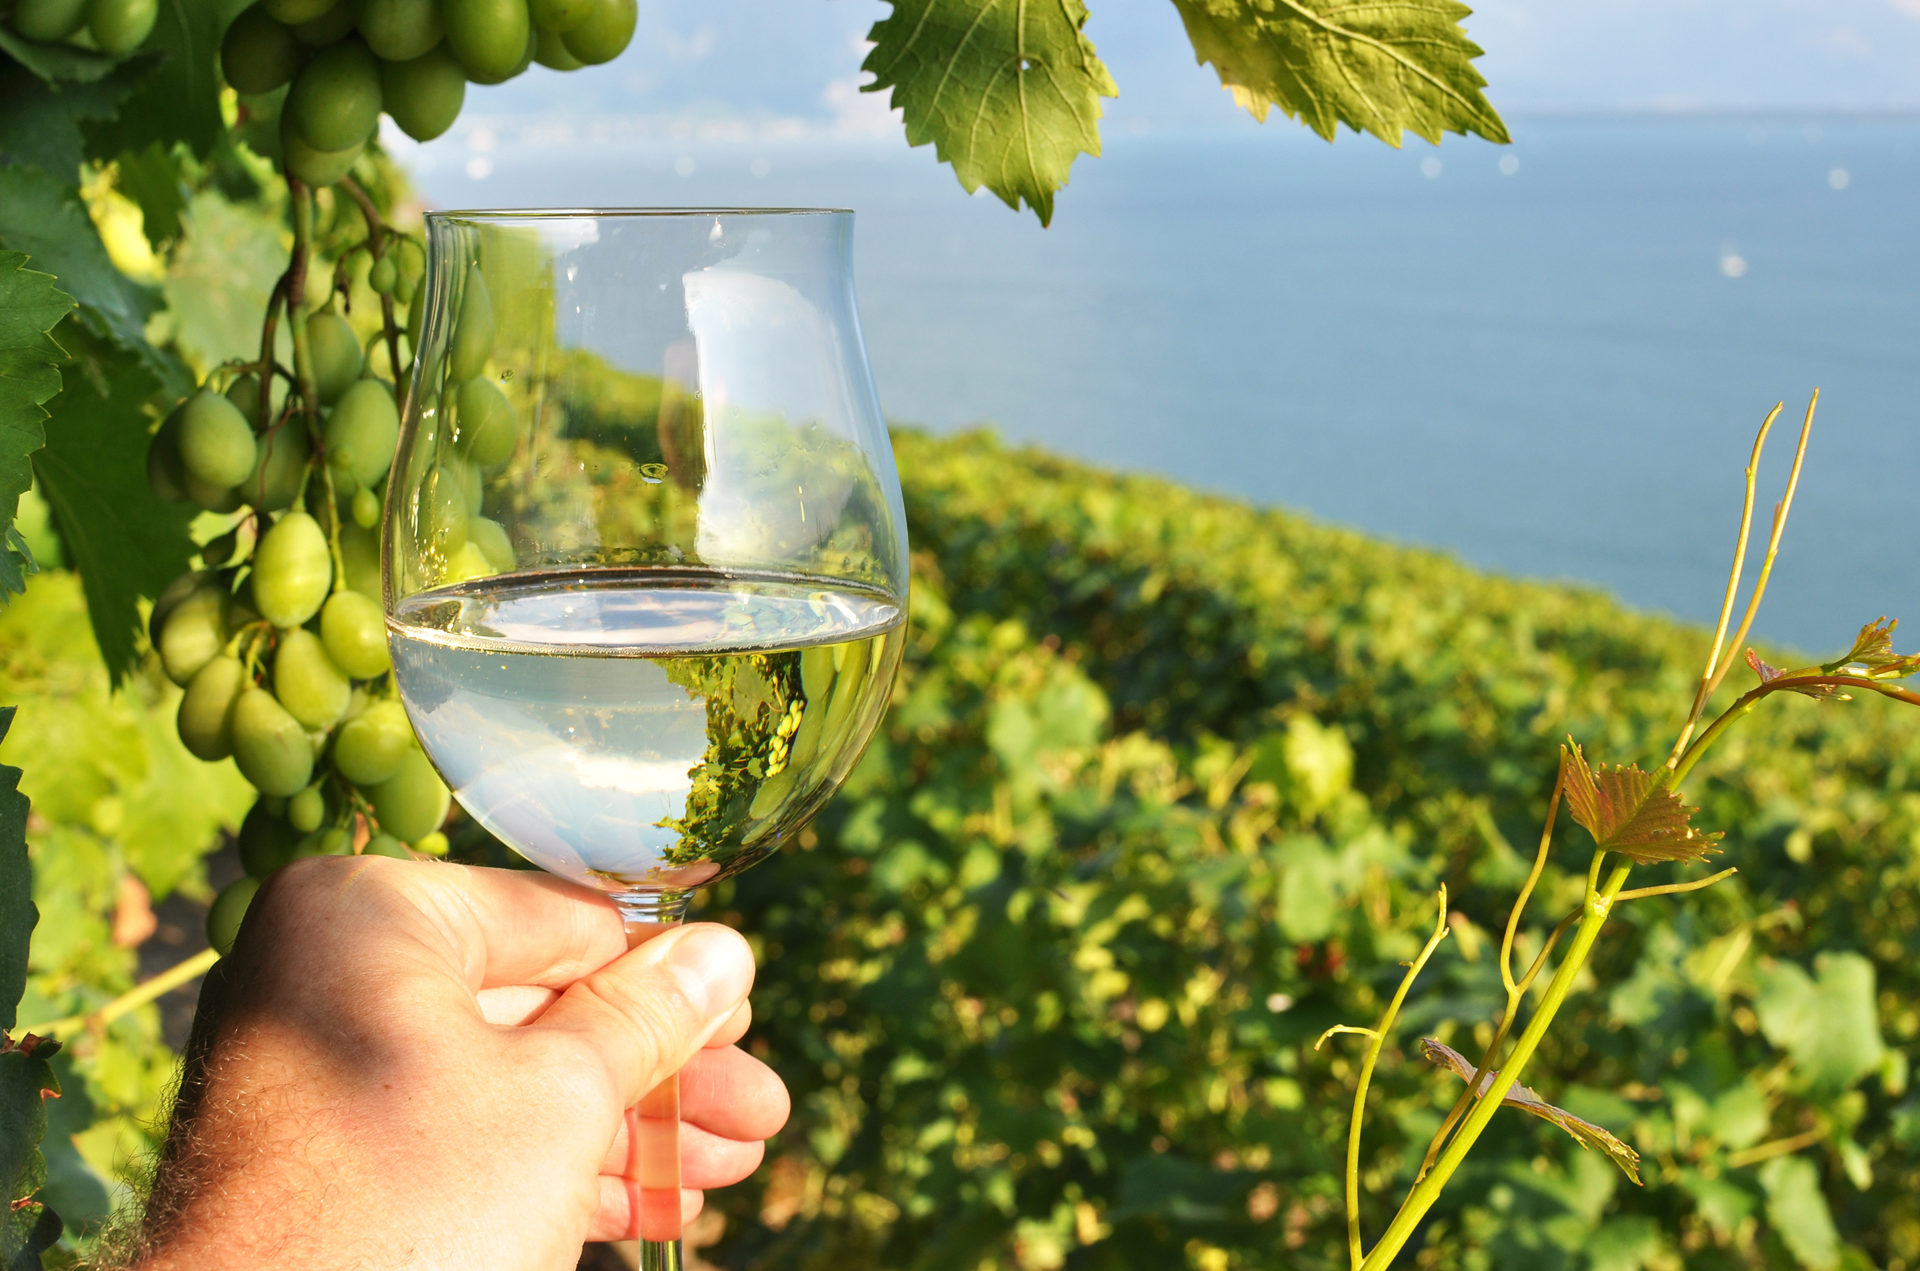 Wineglass with vineyards background